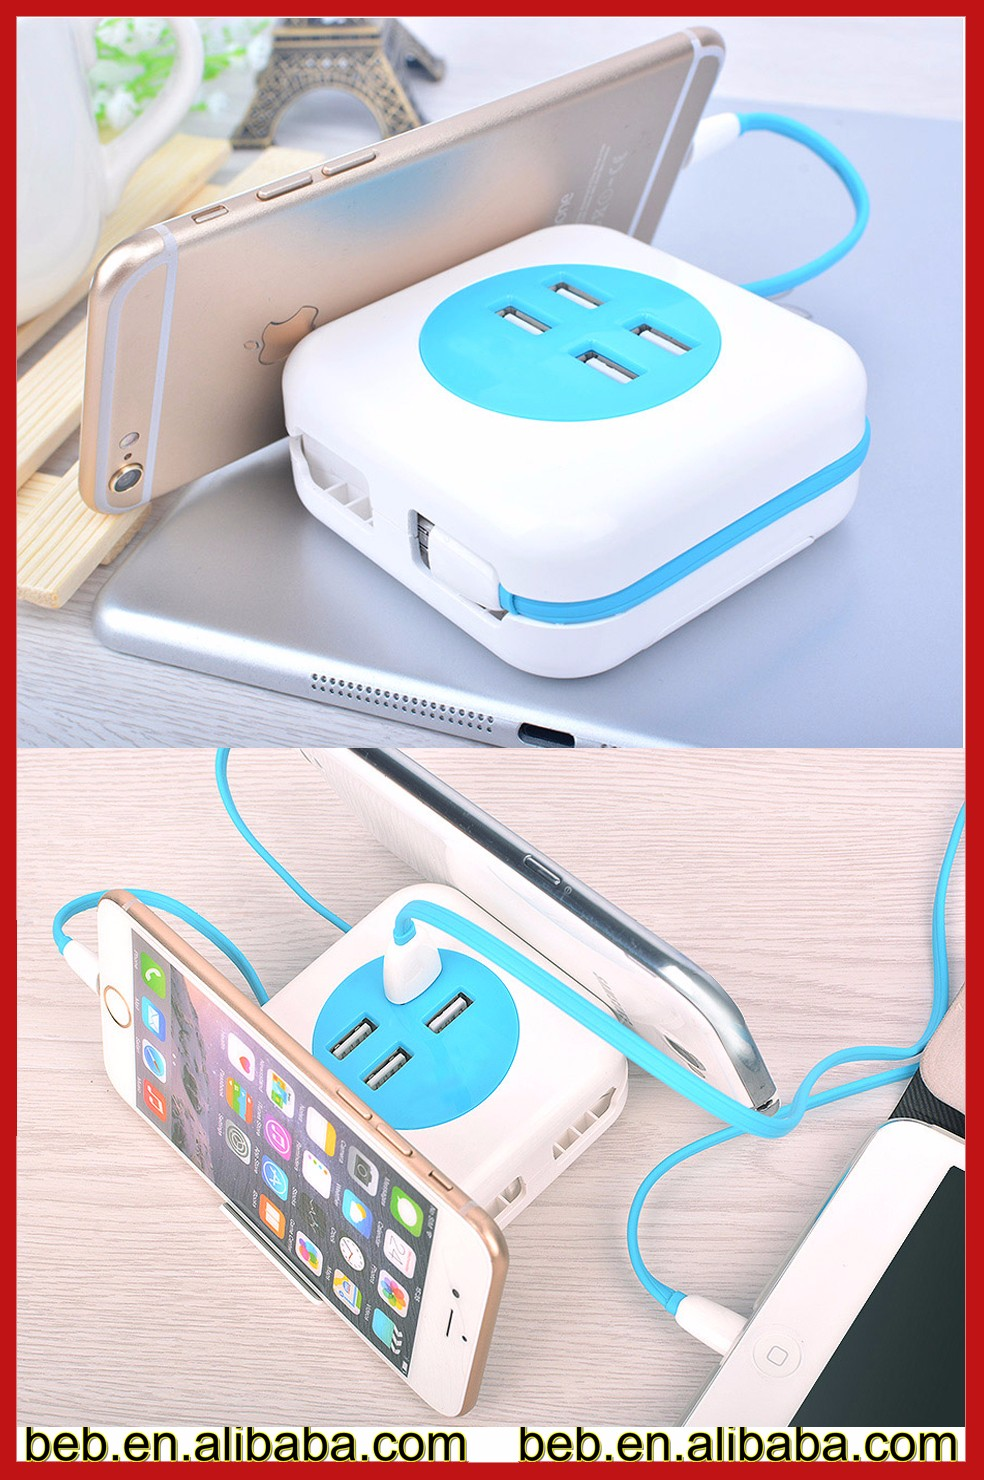 Manufacture Flat USB Wall Charger For iPhone Charger Adaptor